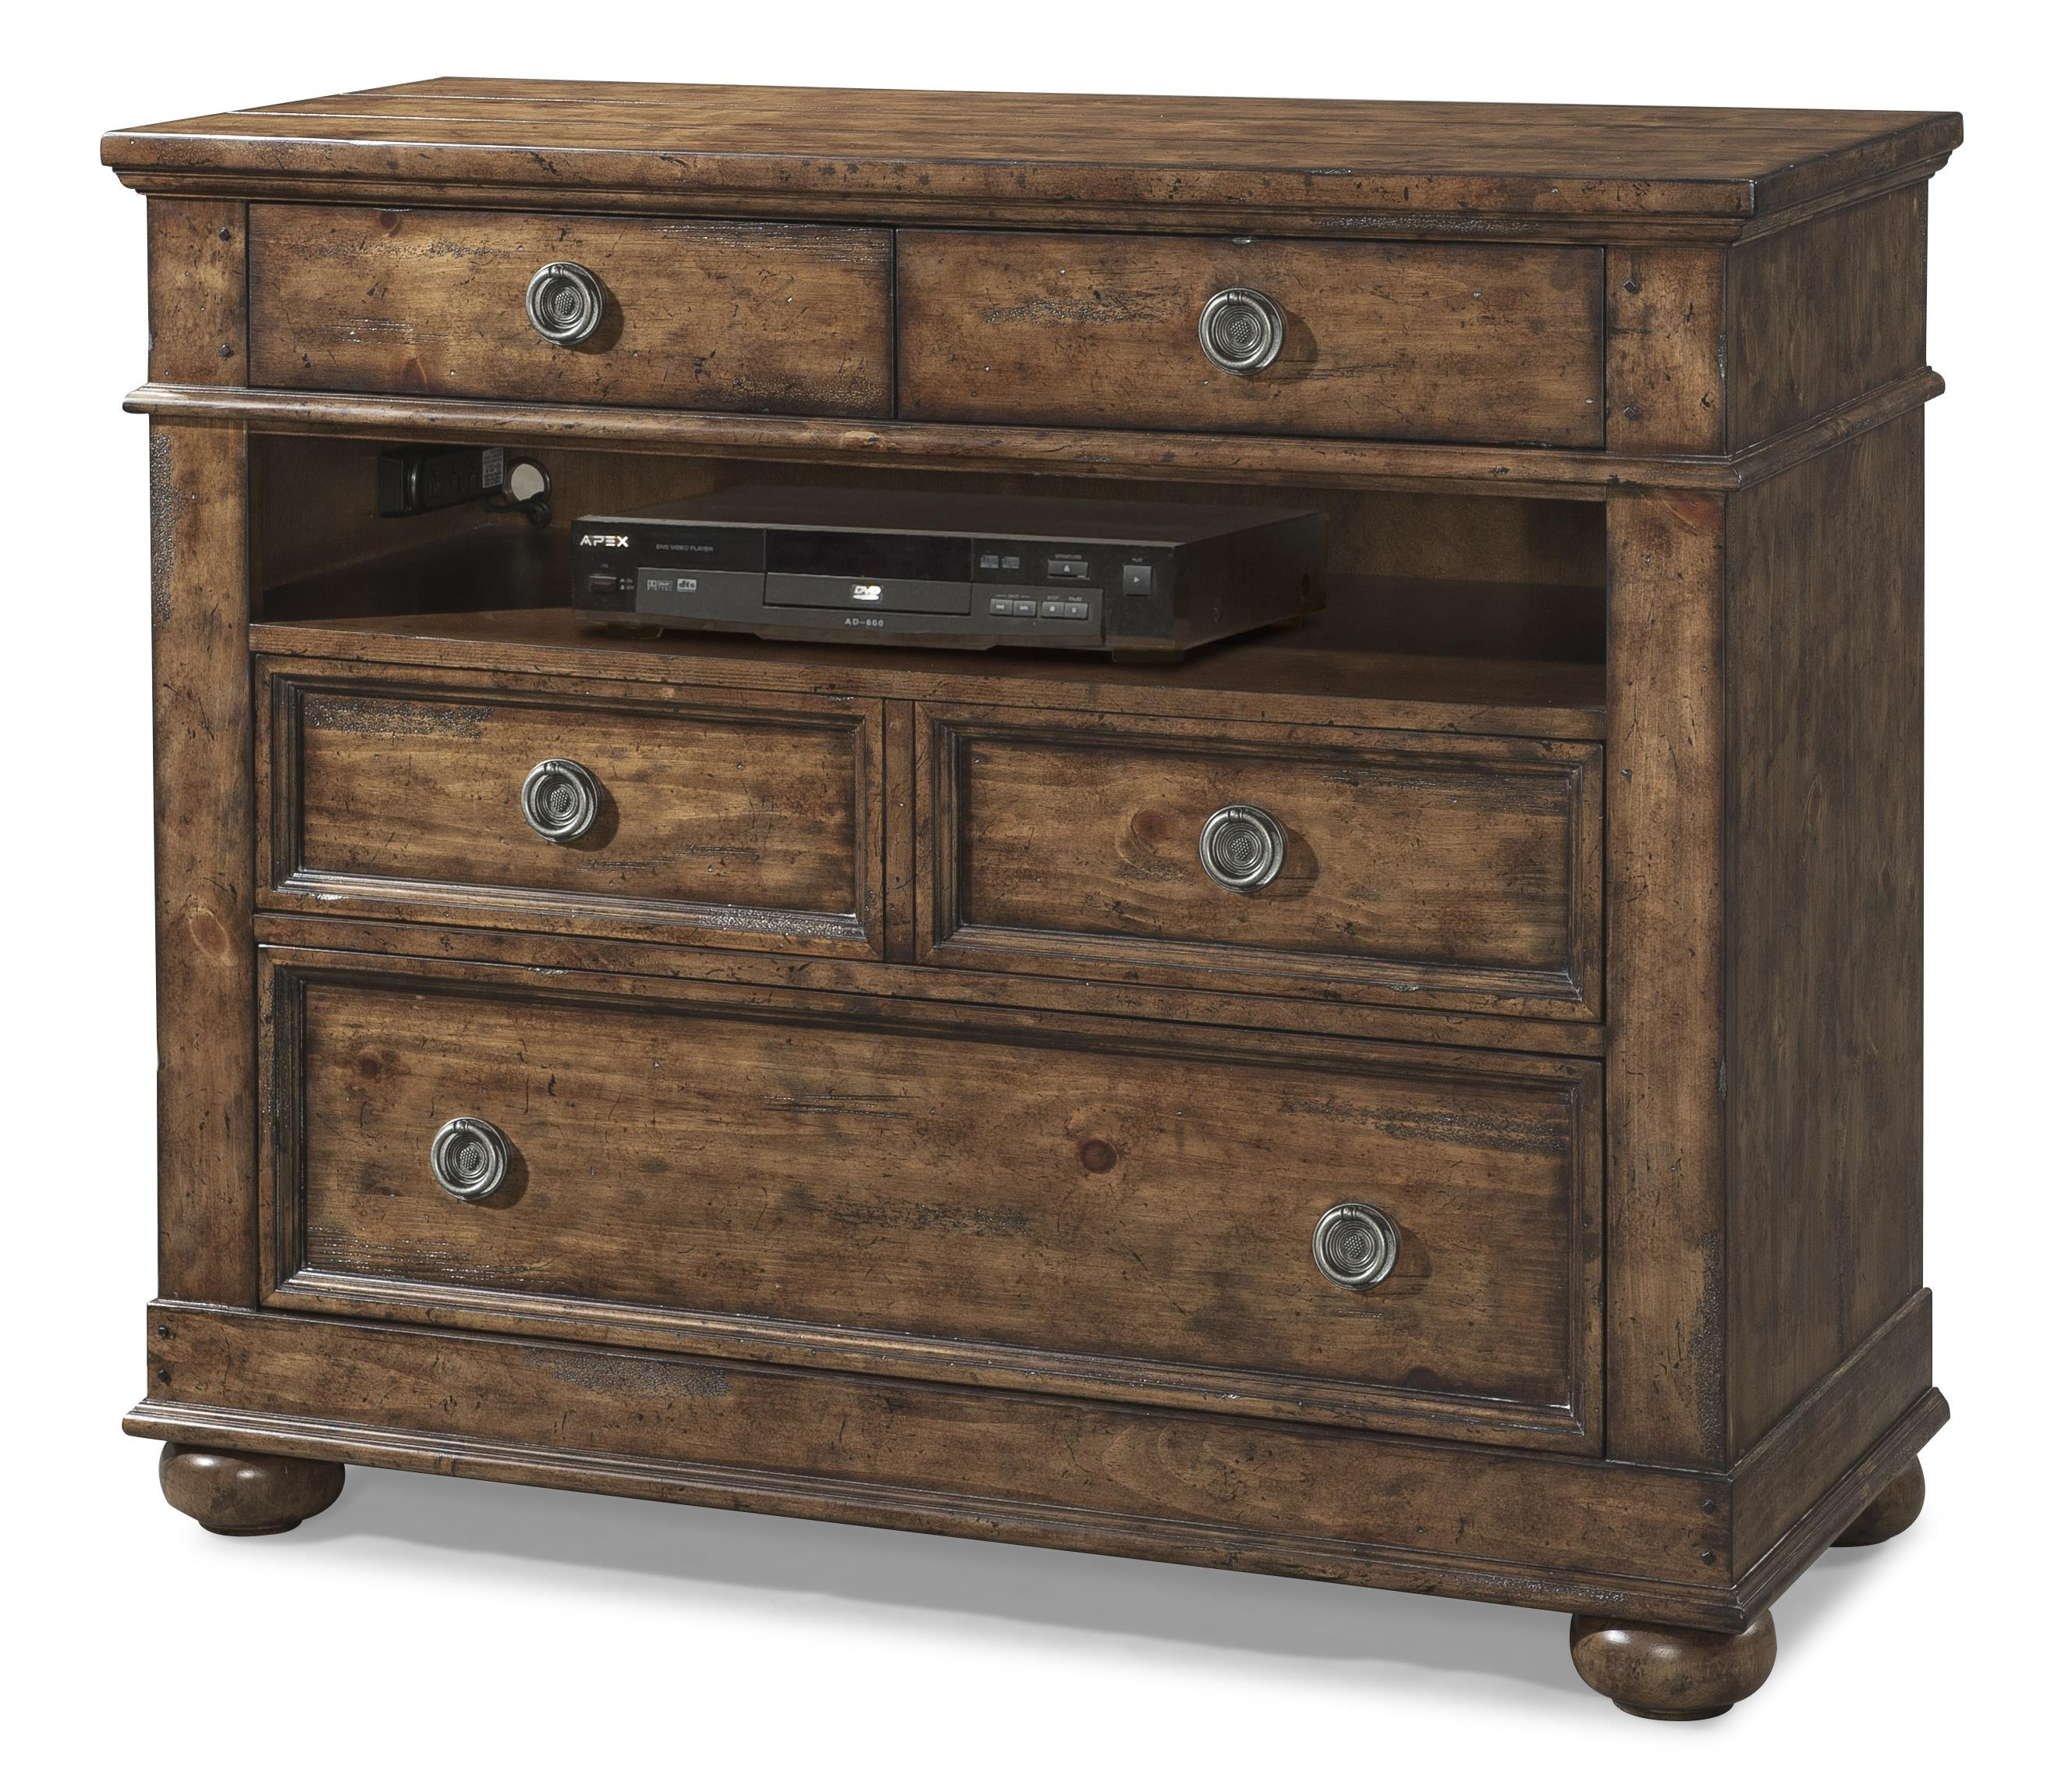 Easton Collection Farmhouse Bluff Media 4 Drawer Chest - Item Number: 436-682 MCHES